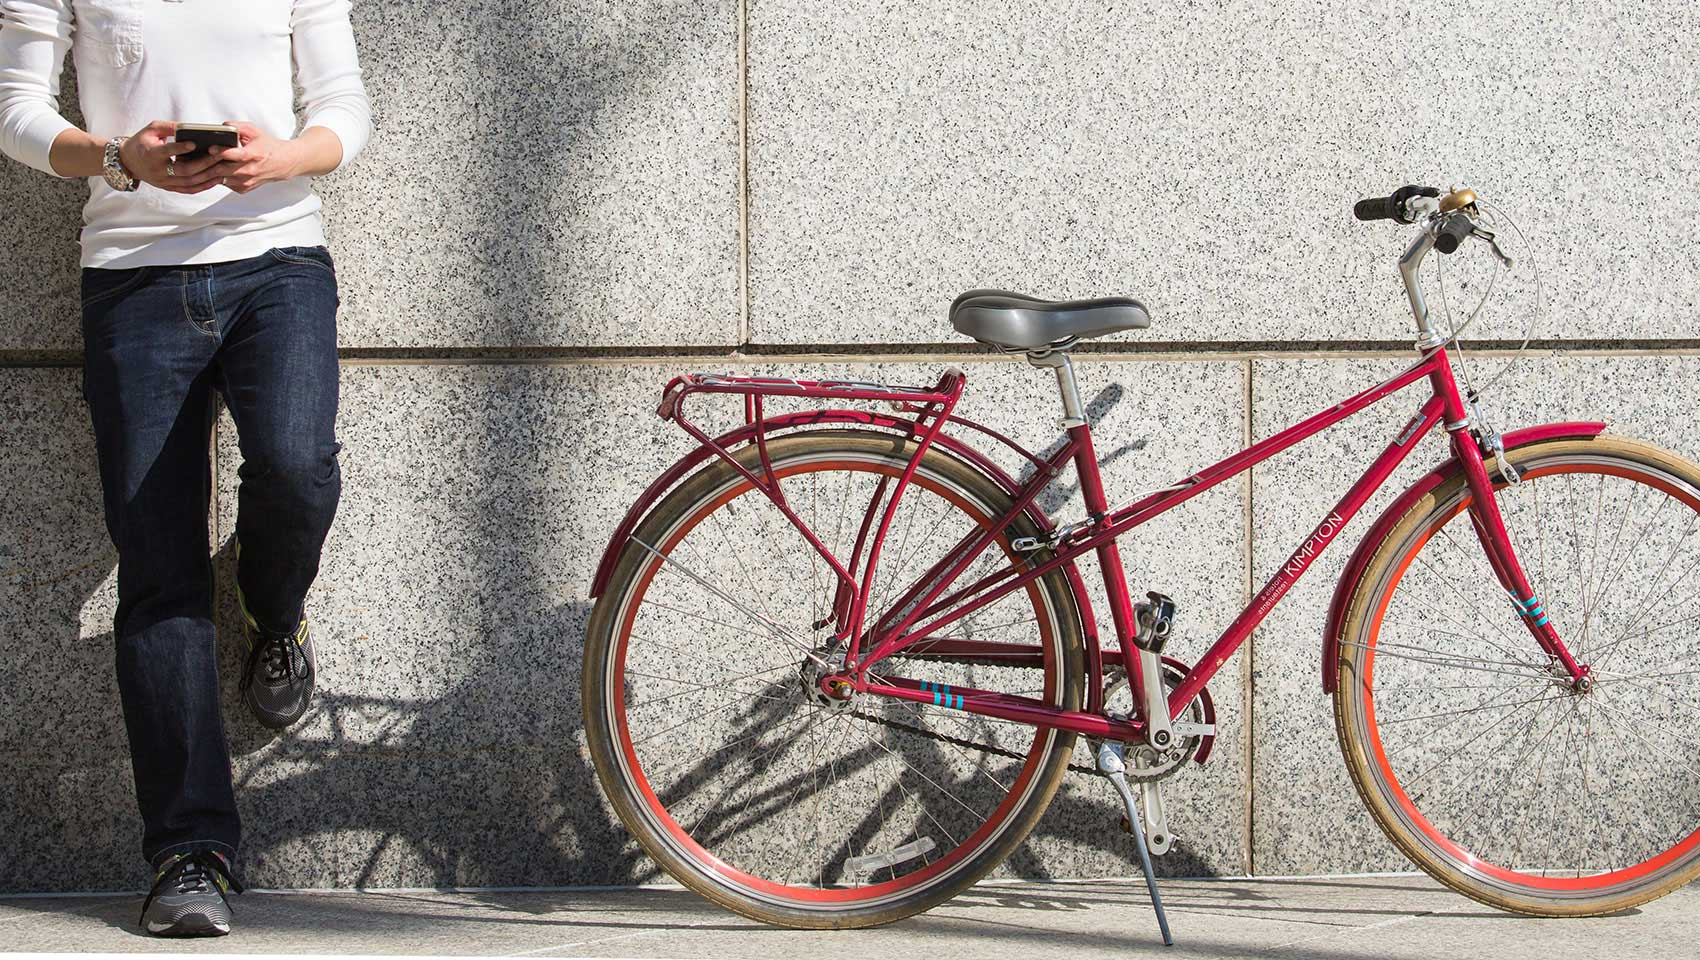 kimpton bicycle